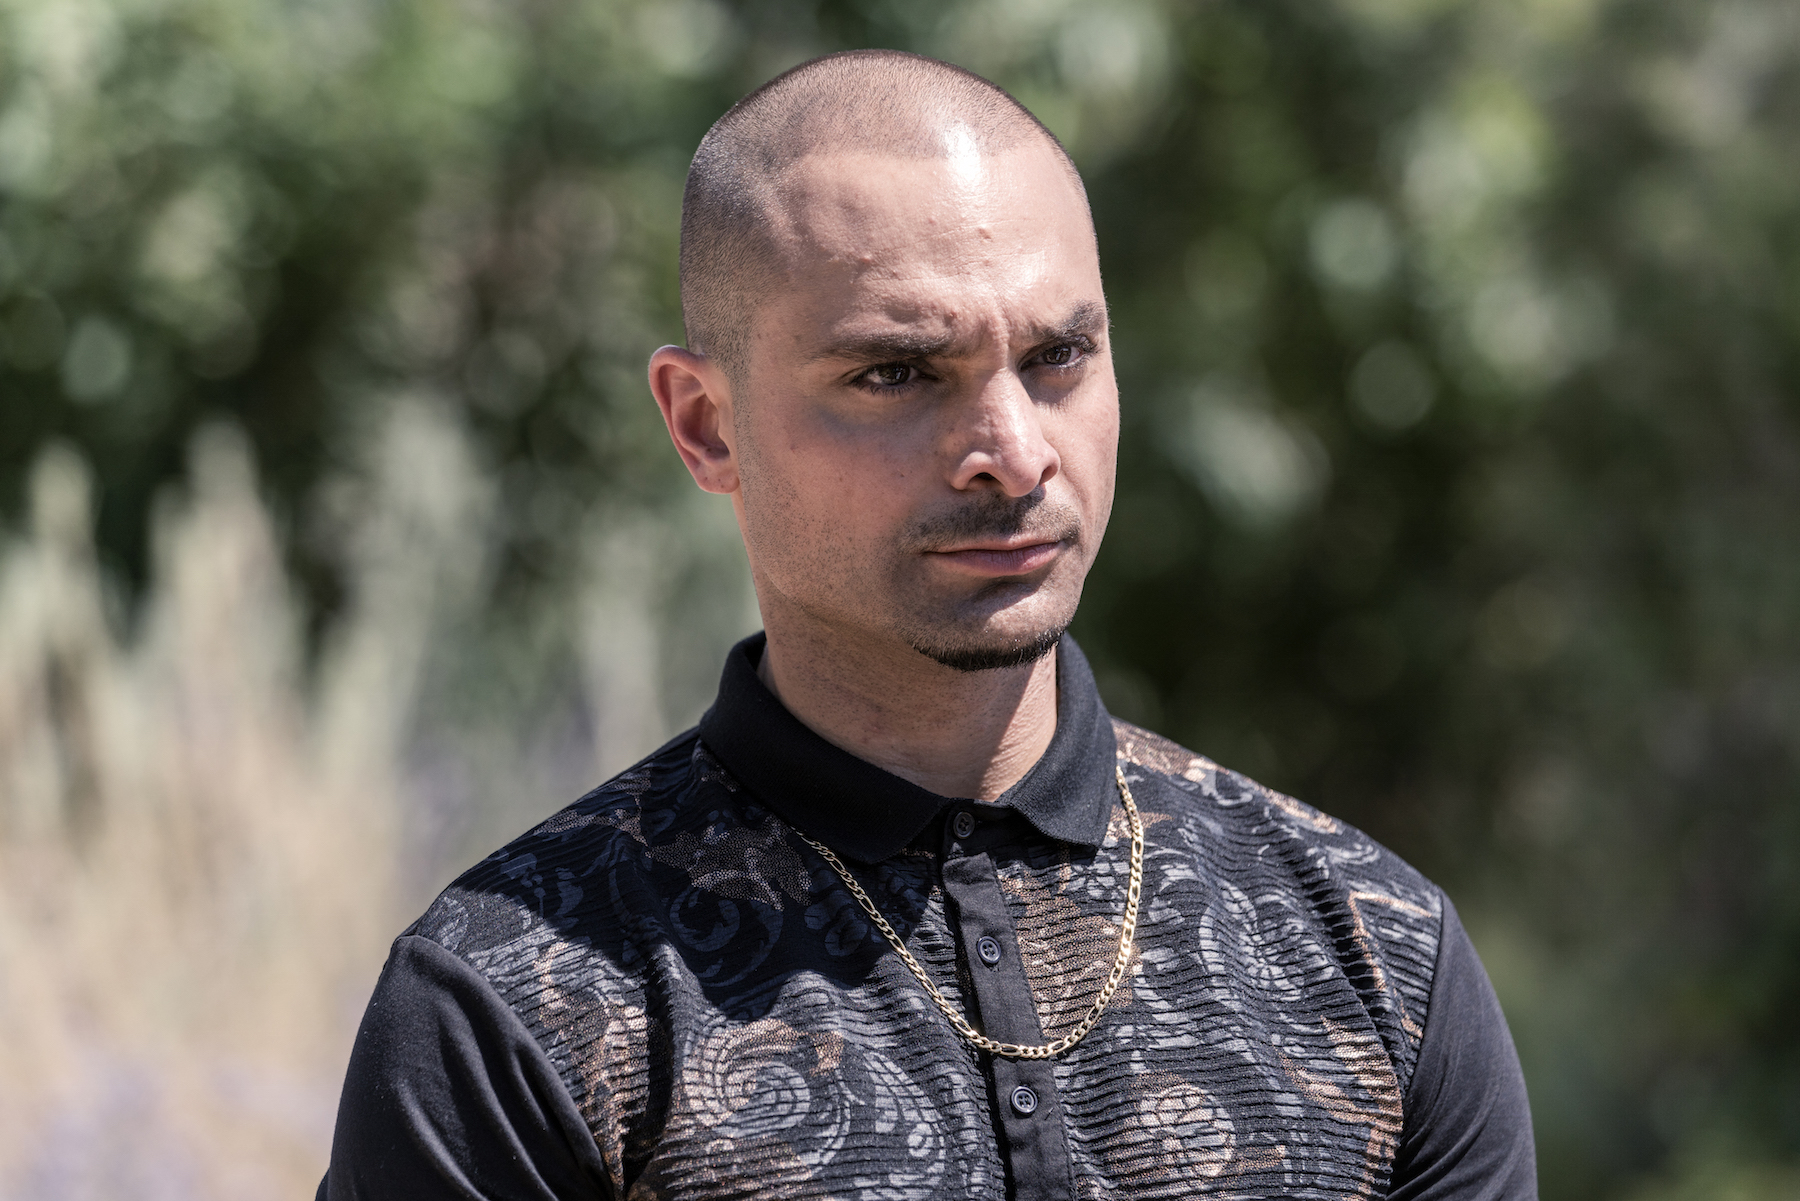 Michael Mando as Nacho Varga - Better Call Saul _ Season 5, Episode 10 - Photo Credit: Greg Lewis/AMC/Sony Pictures Television